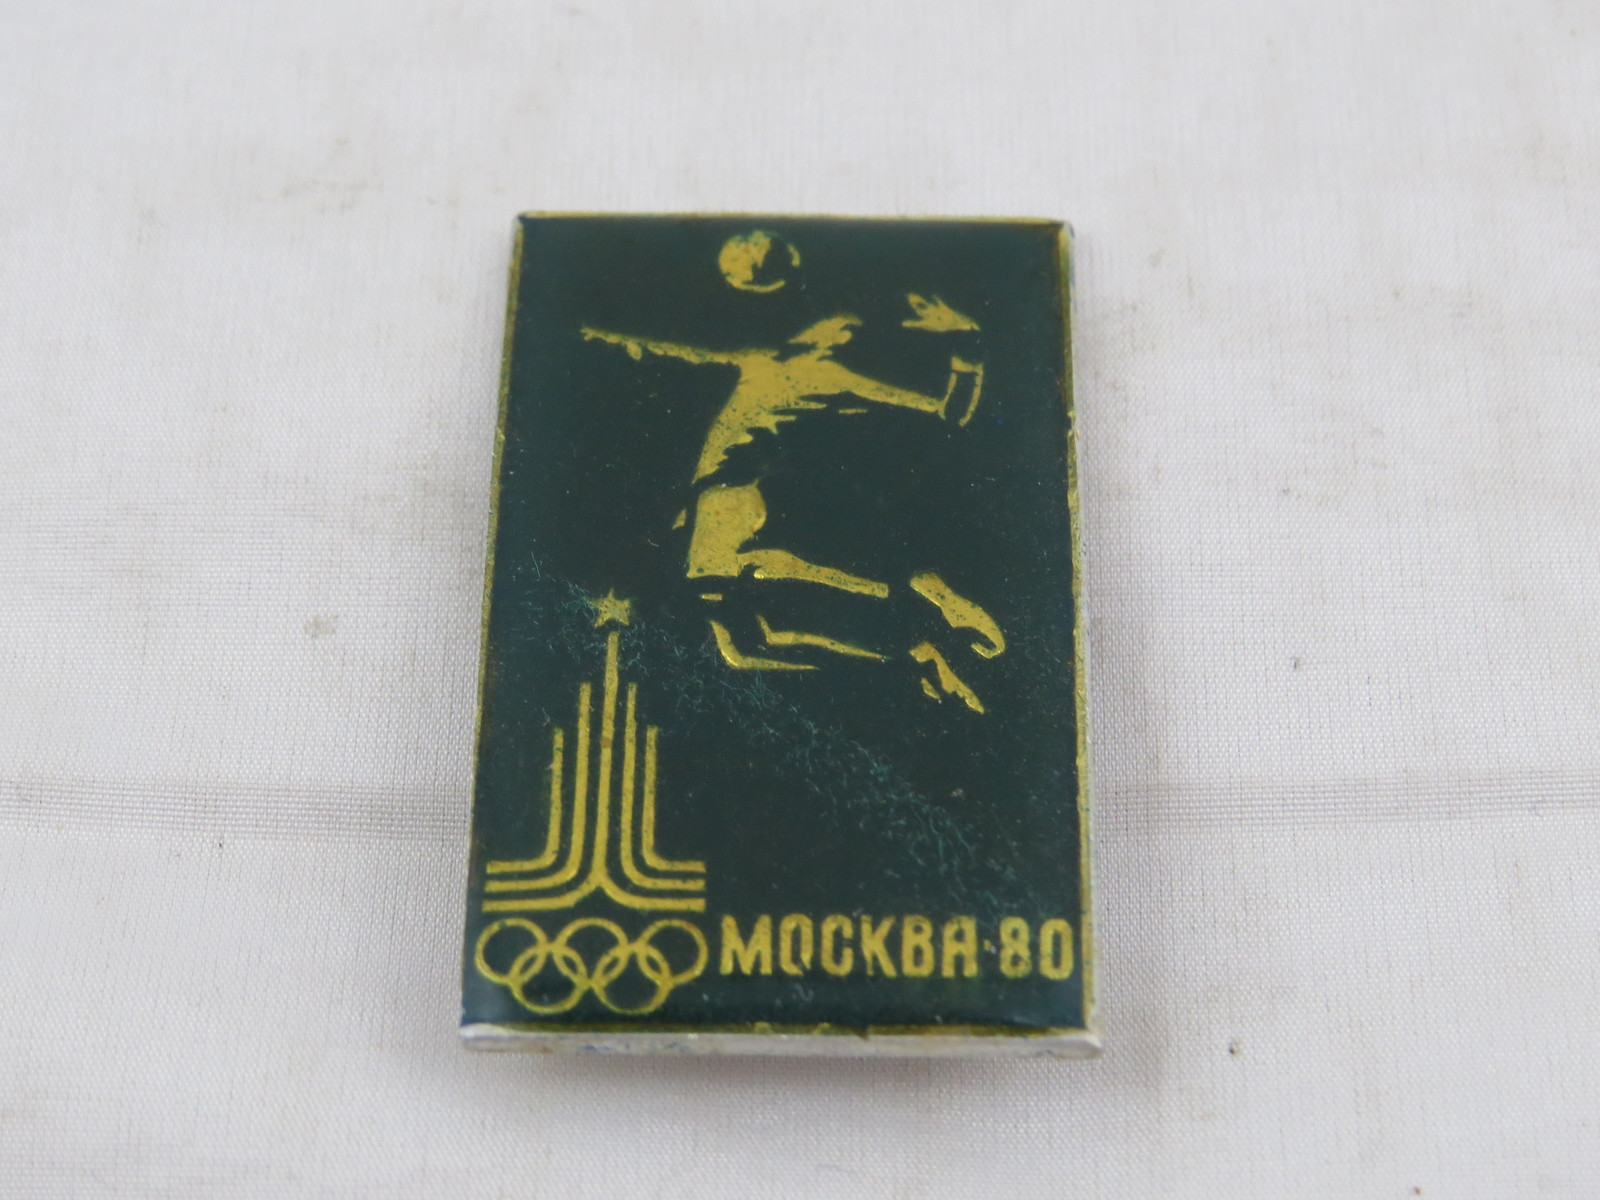 1980 Summer Olympic Pin - Vollebay Event Pin - Moscow USSR - Celluloid Pin